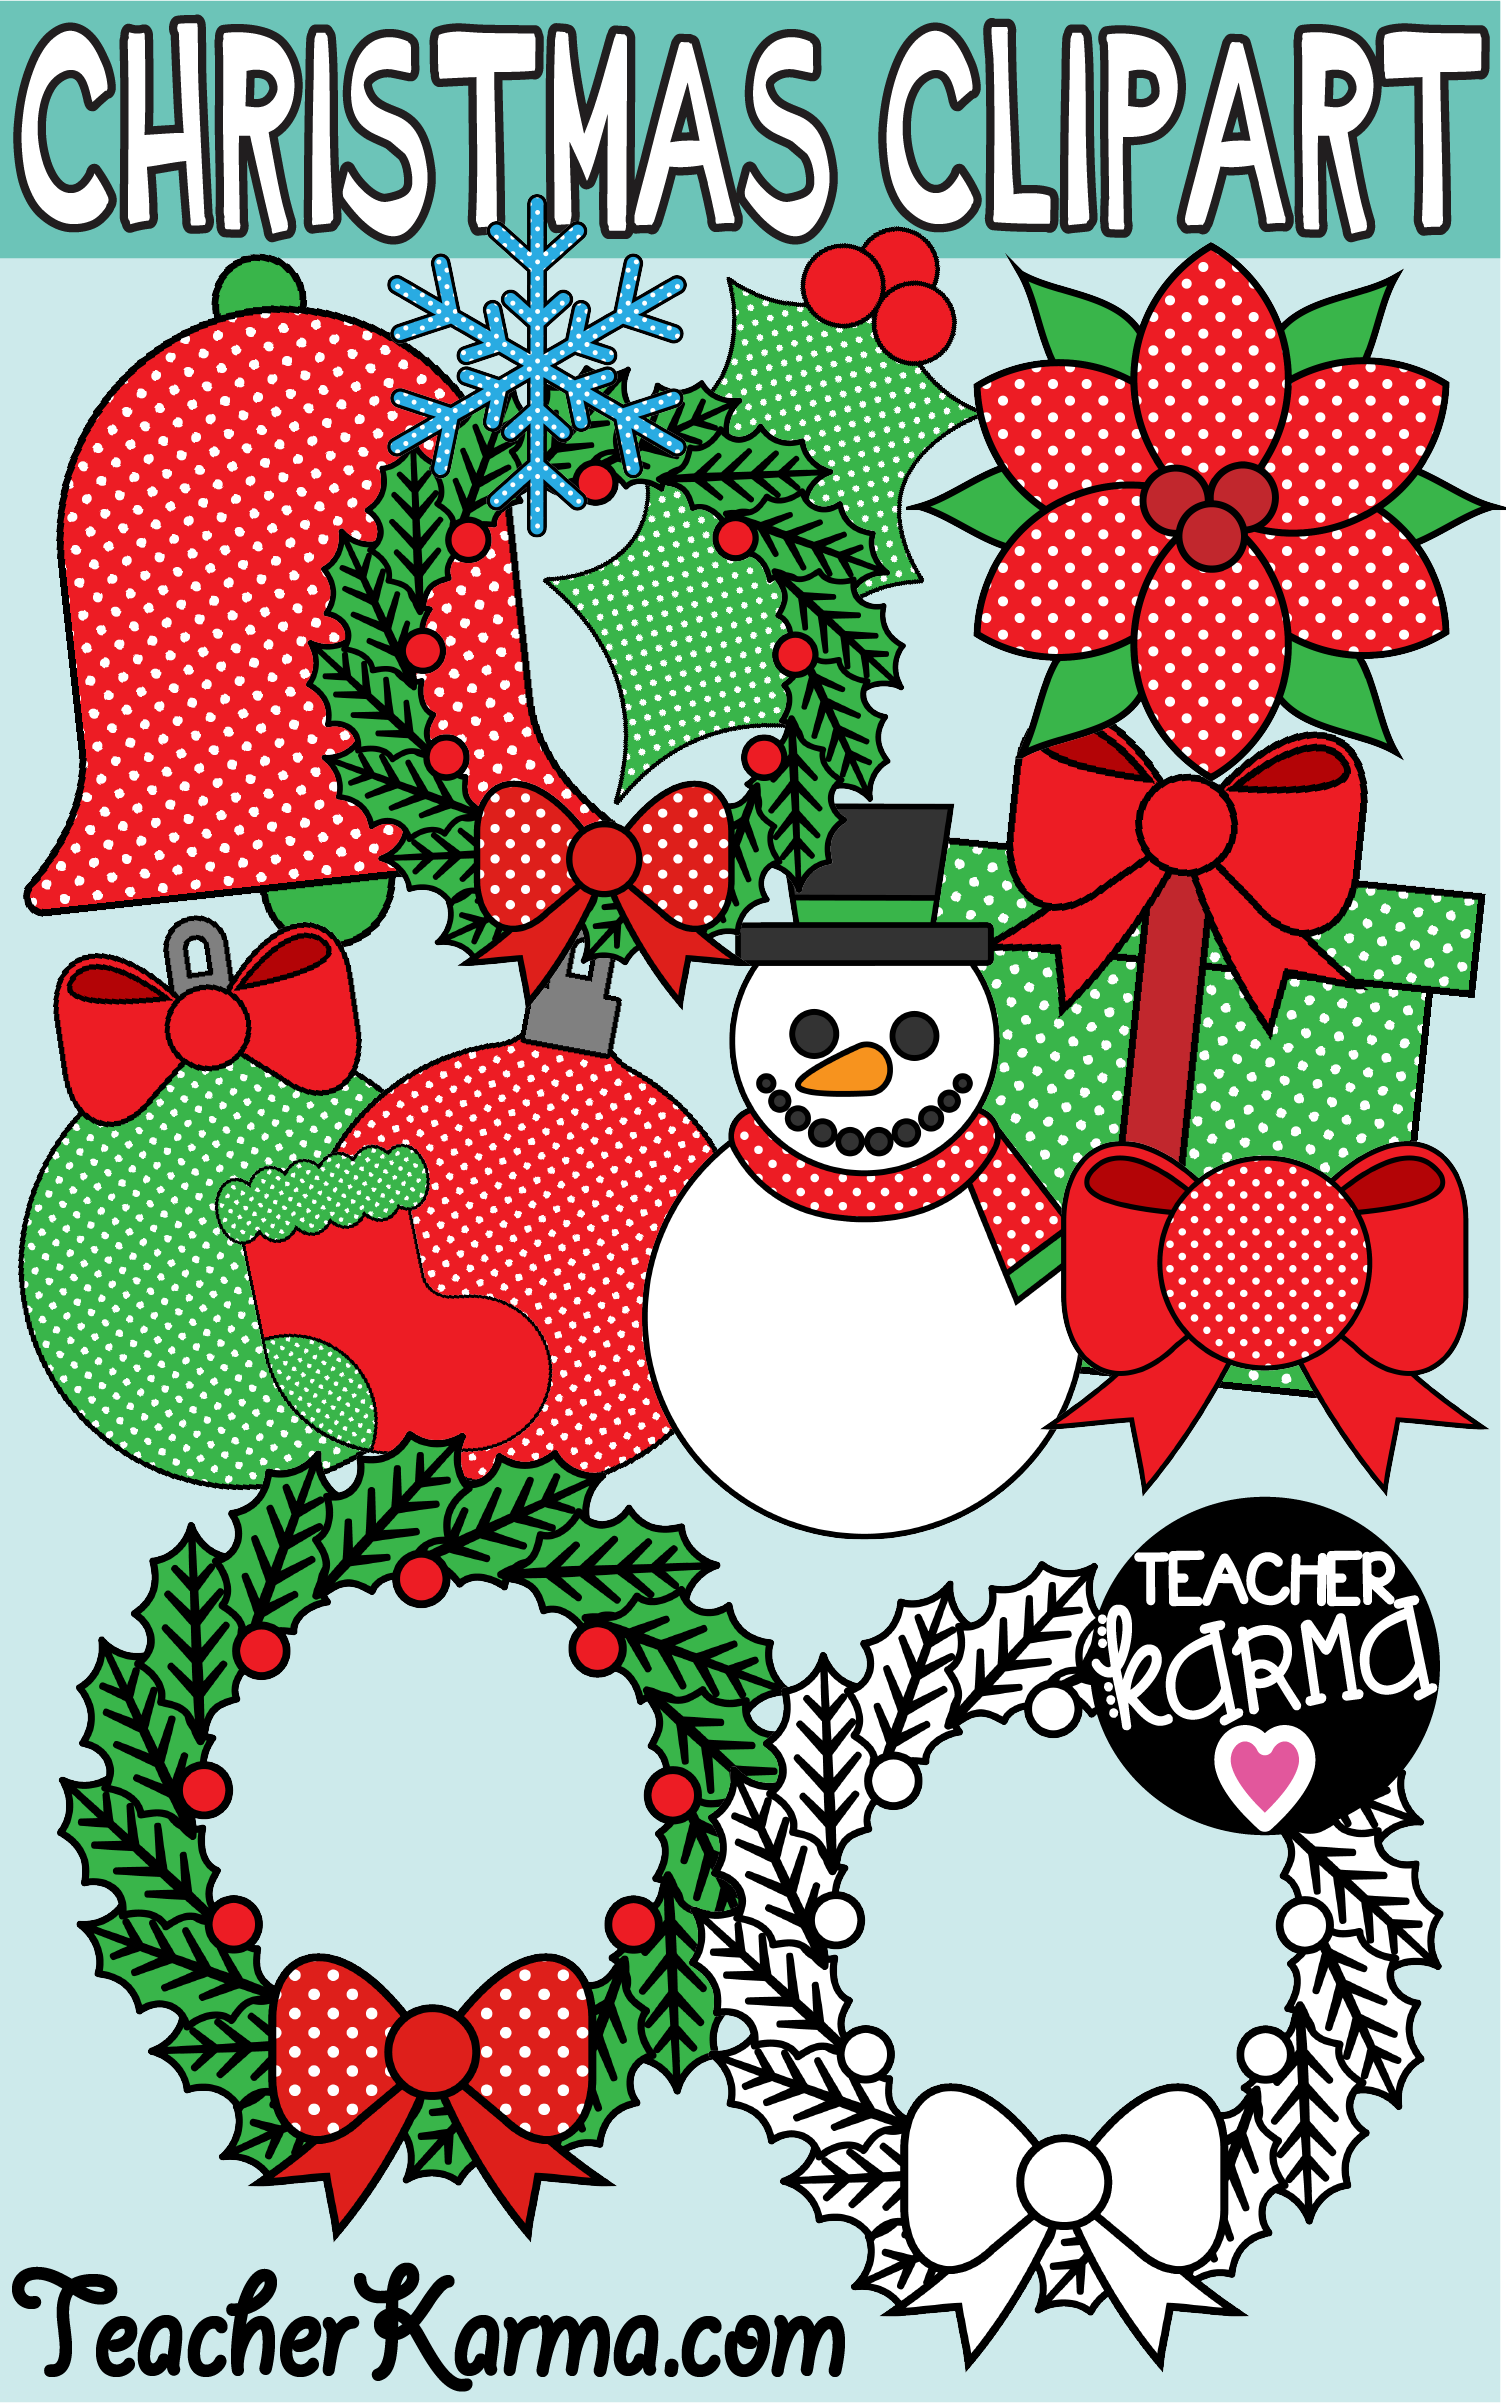 medium resolution of christmas clipart for the classroom holiday graphics include bells ornaments wreaths snowmen gifts bows presents stockings holly poinsettia